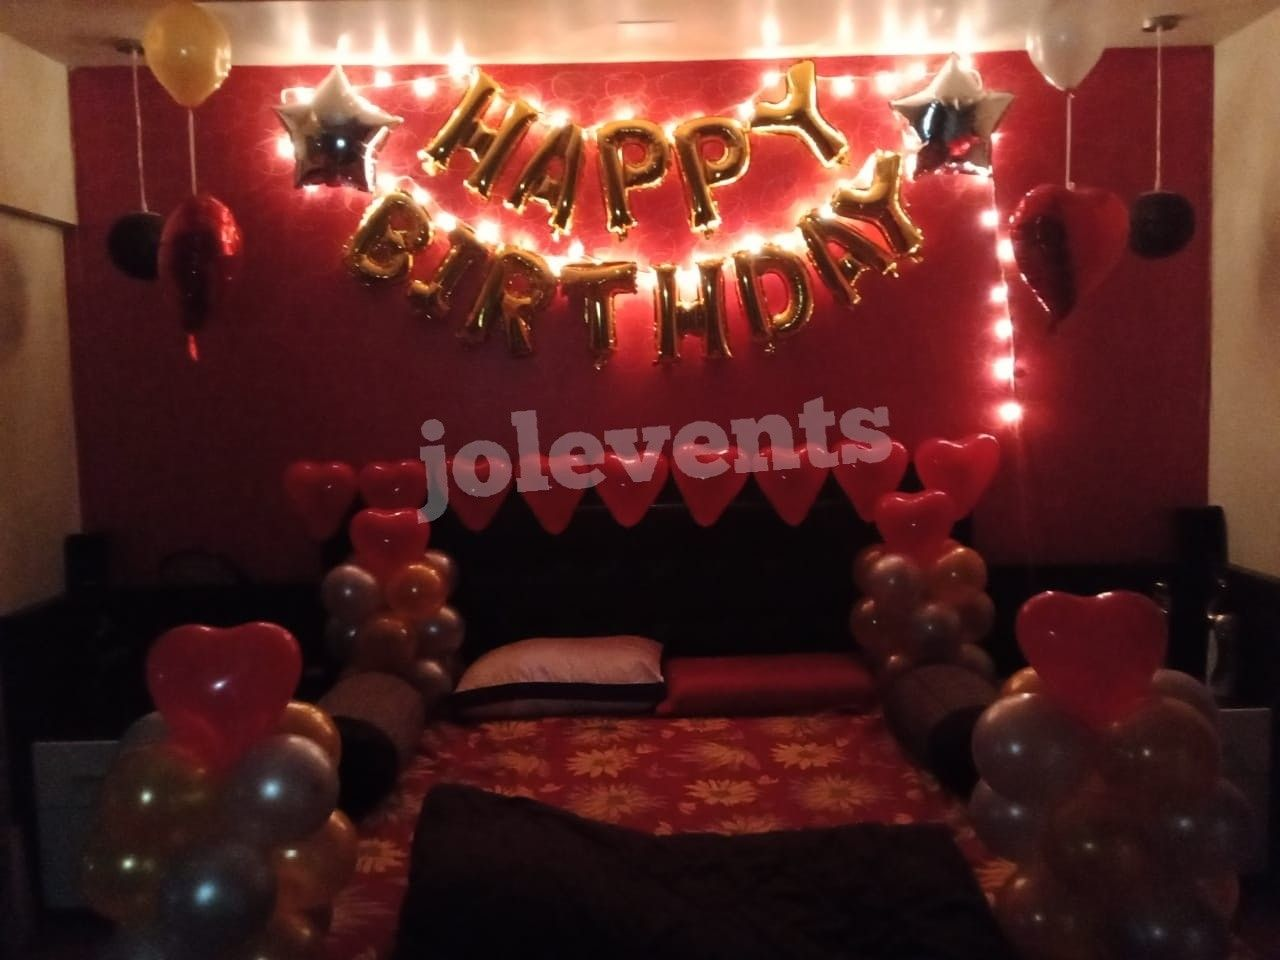 Pin By Jol Events Entertainments On Romantic Room Decoration Pune Birthday Decoration In 2020 Simple Birthday Decorations Birthday Decorations Romantic Room Decoration